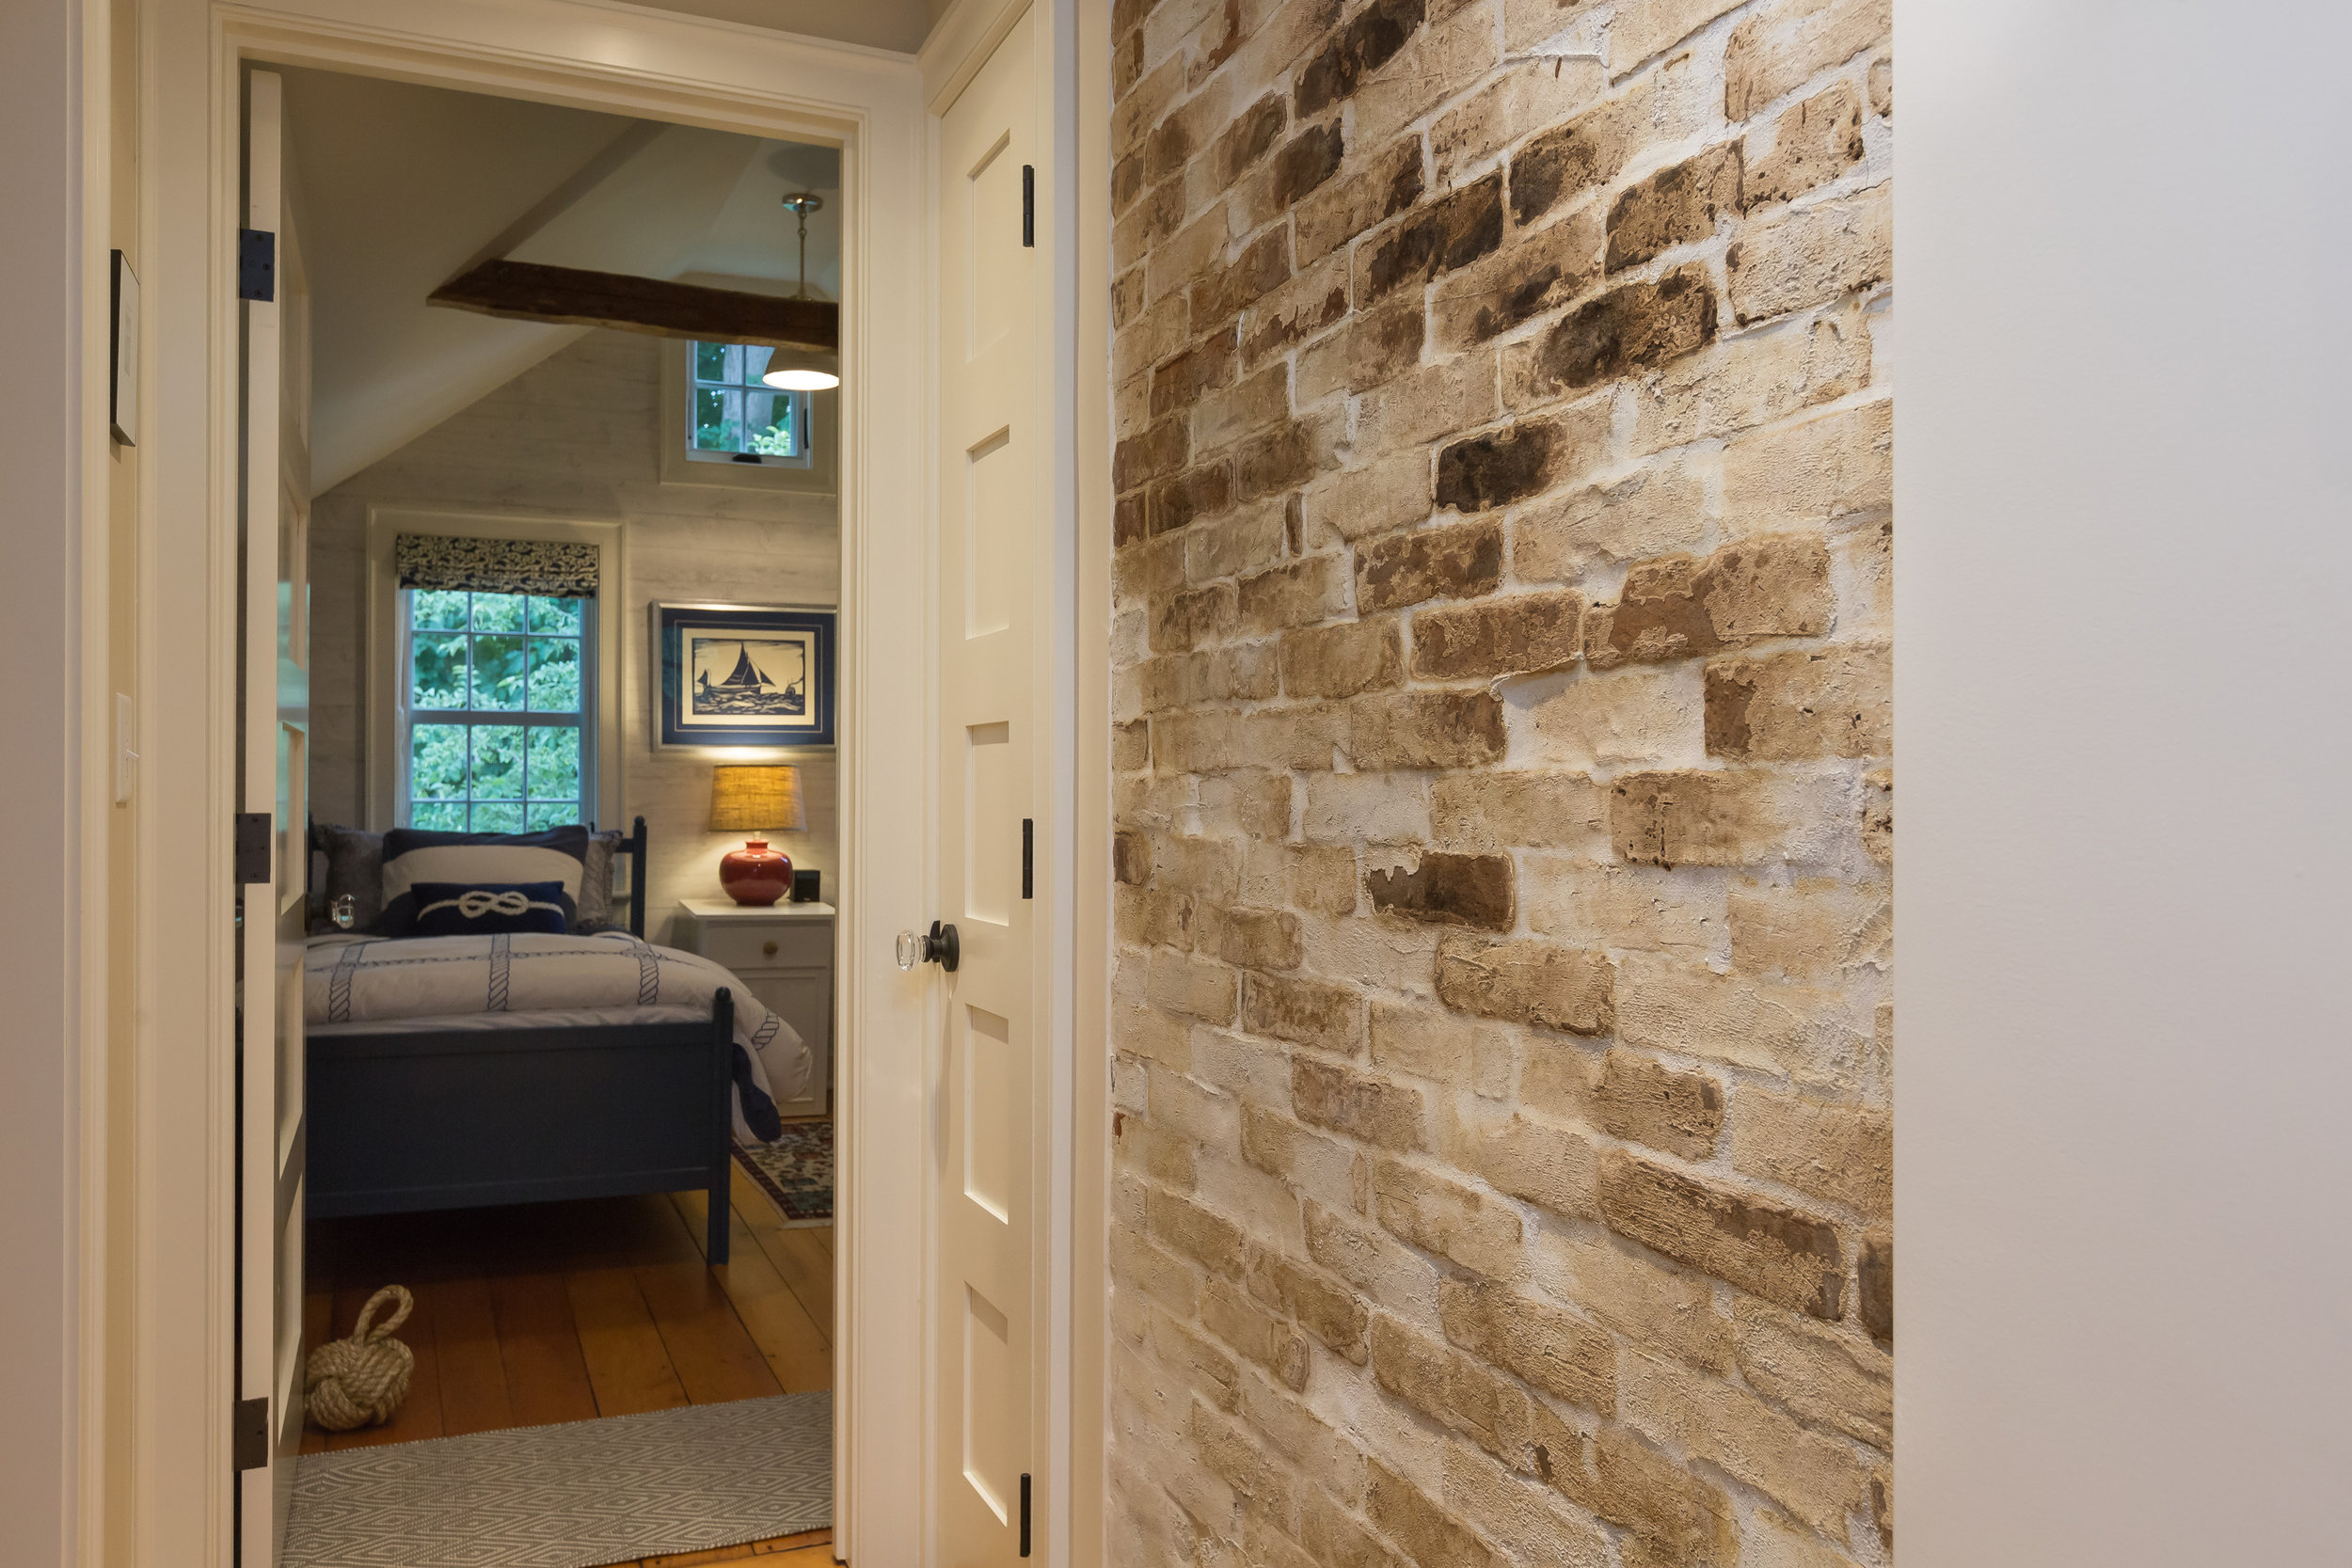 Renovations — Maguire Construction